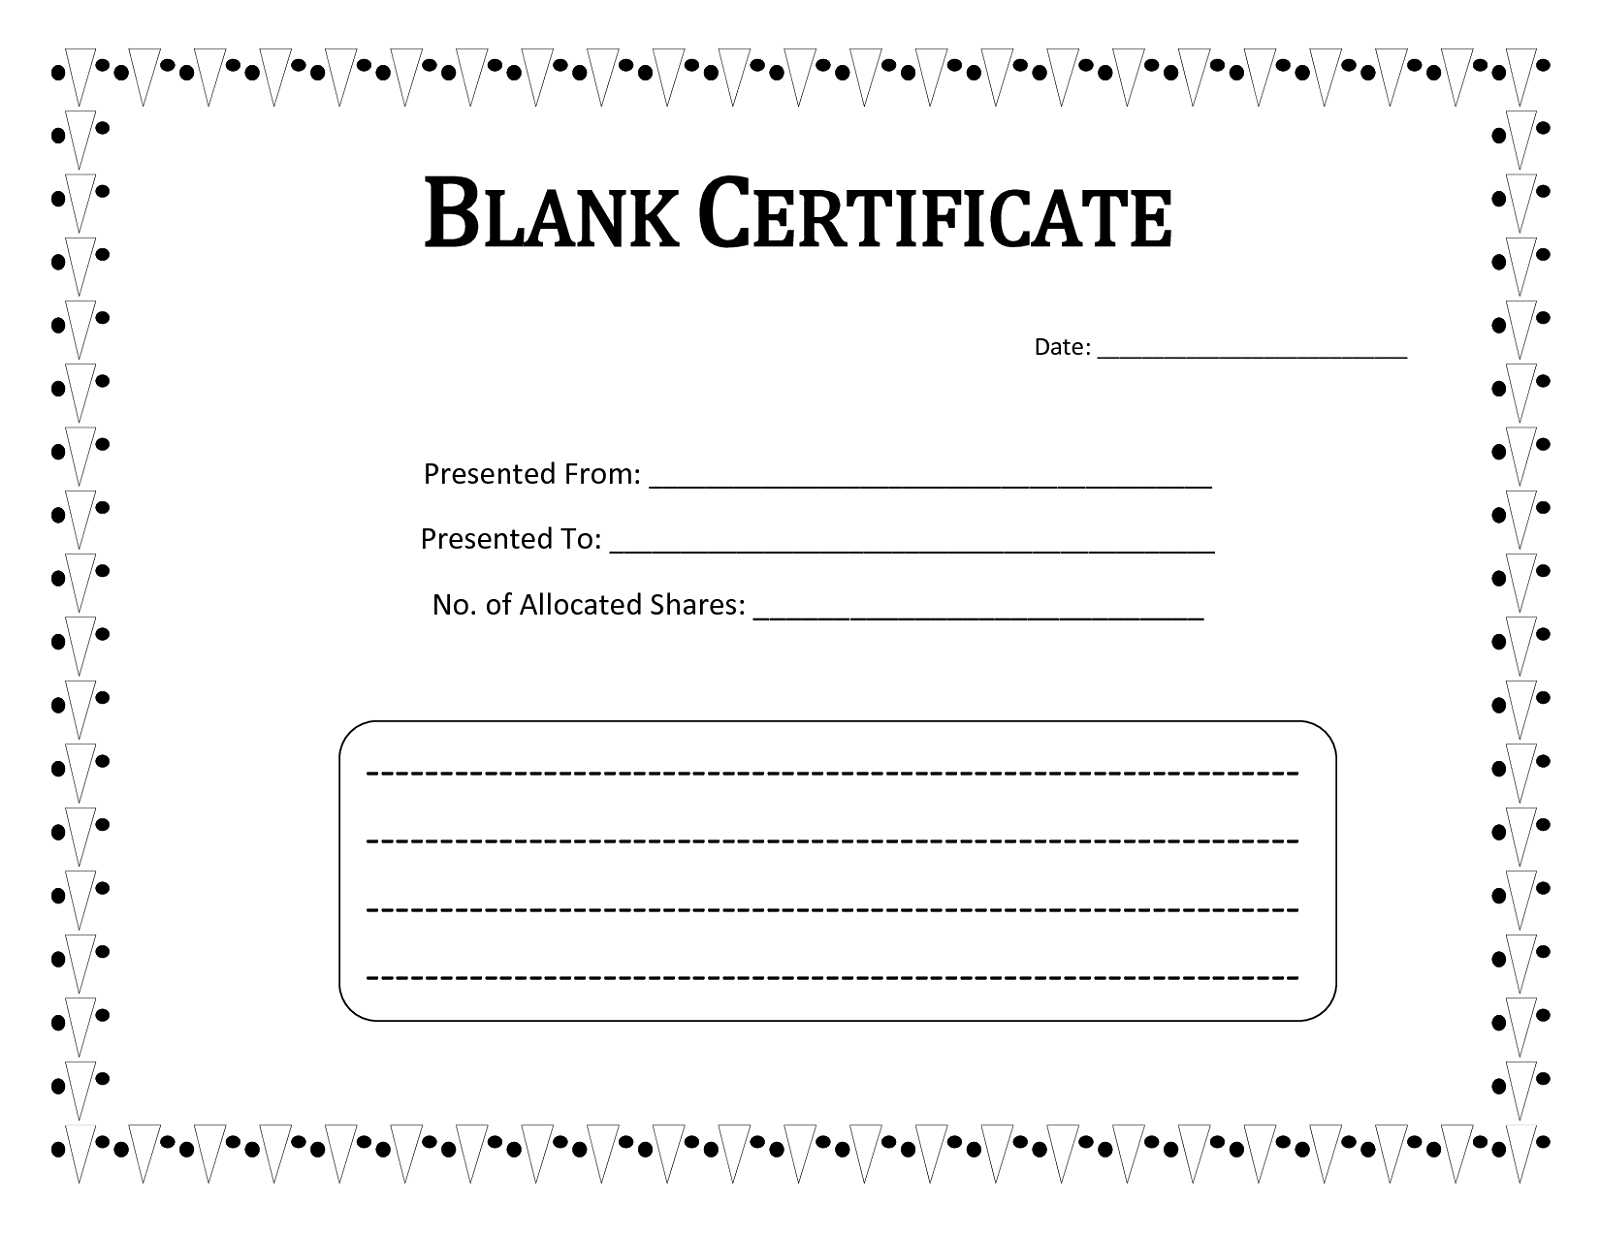 Blank certificate templates to print activity shelter blank blank certificate templates to print activity shelter yadclub Images